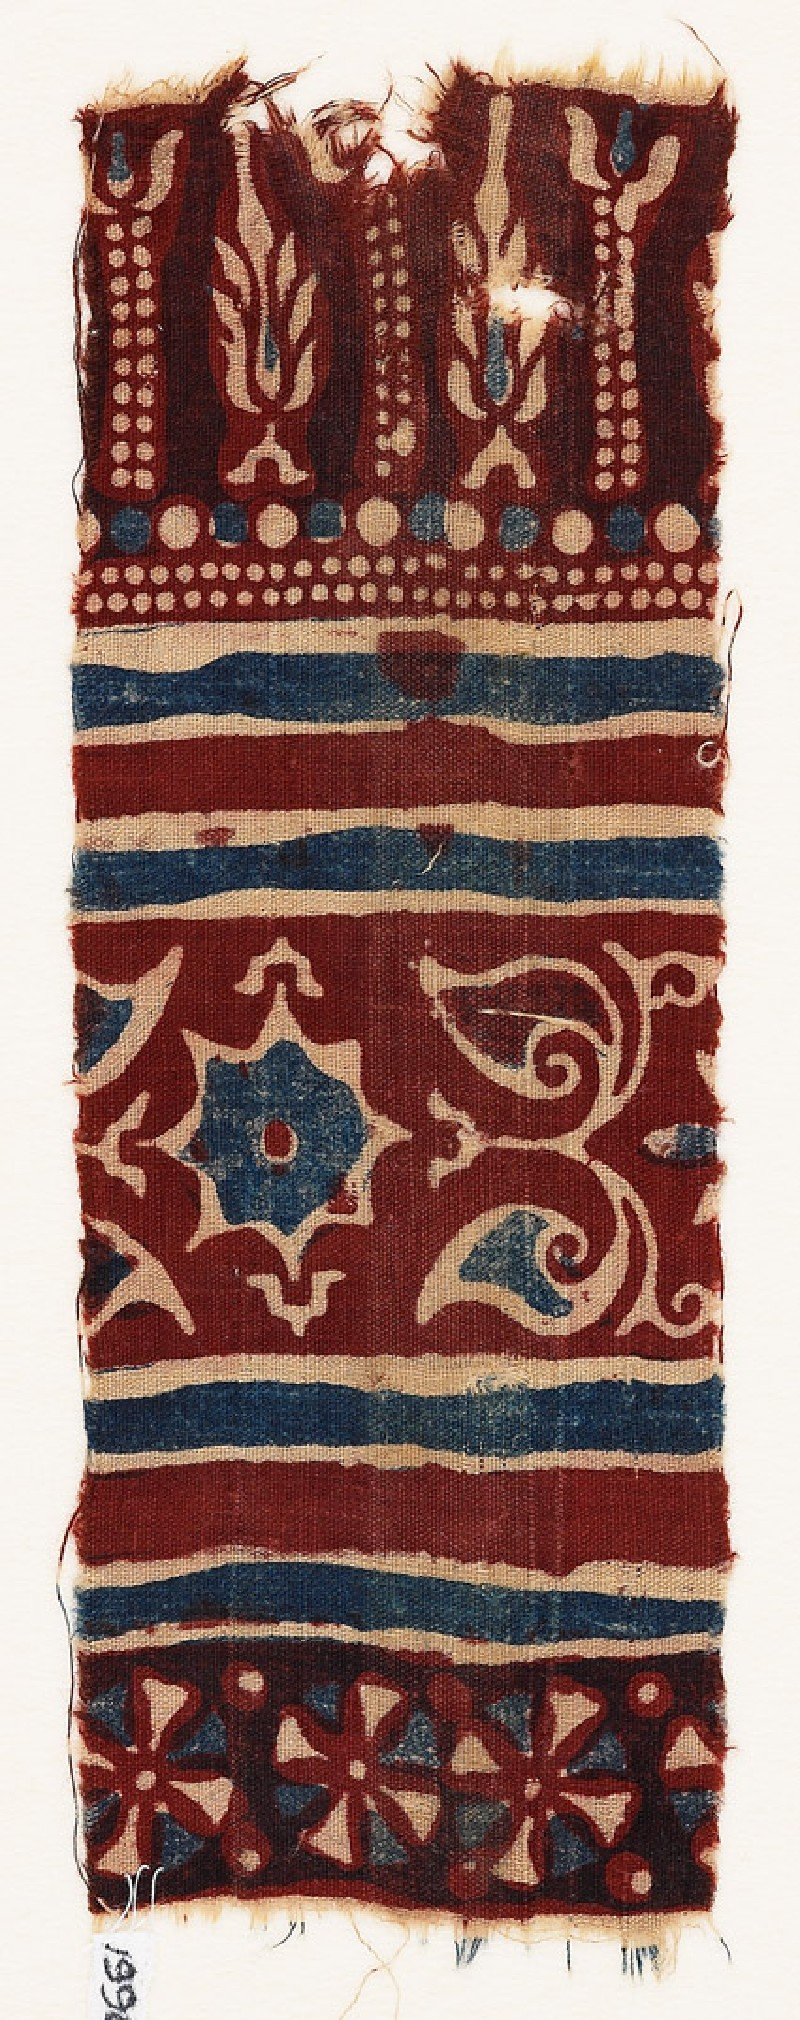 Textile fragment with stylized trees, a star, and leaves